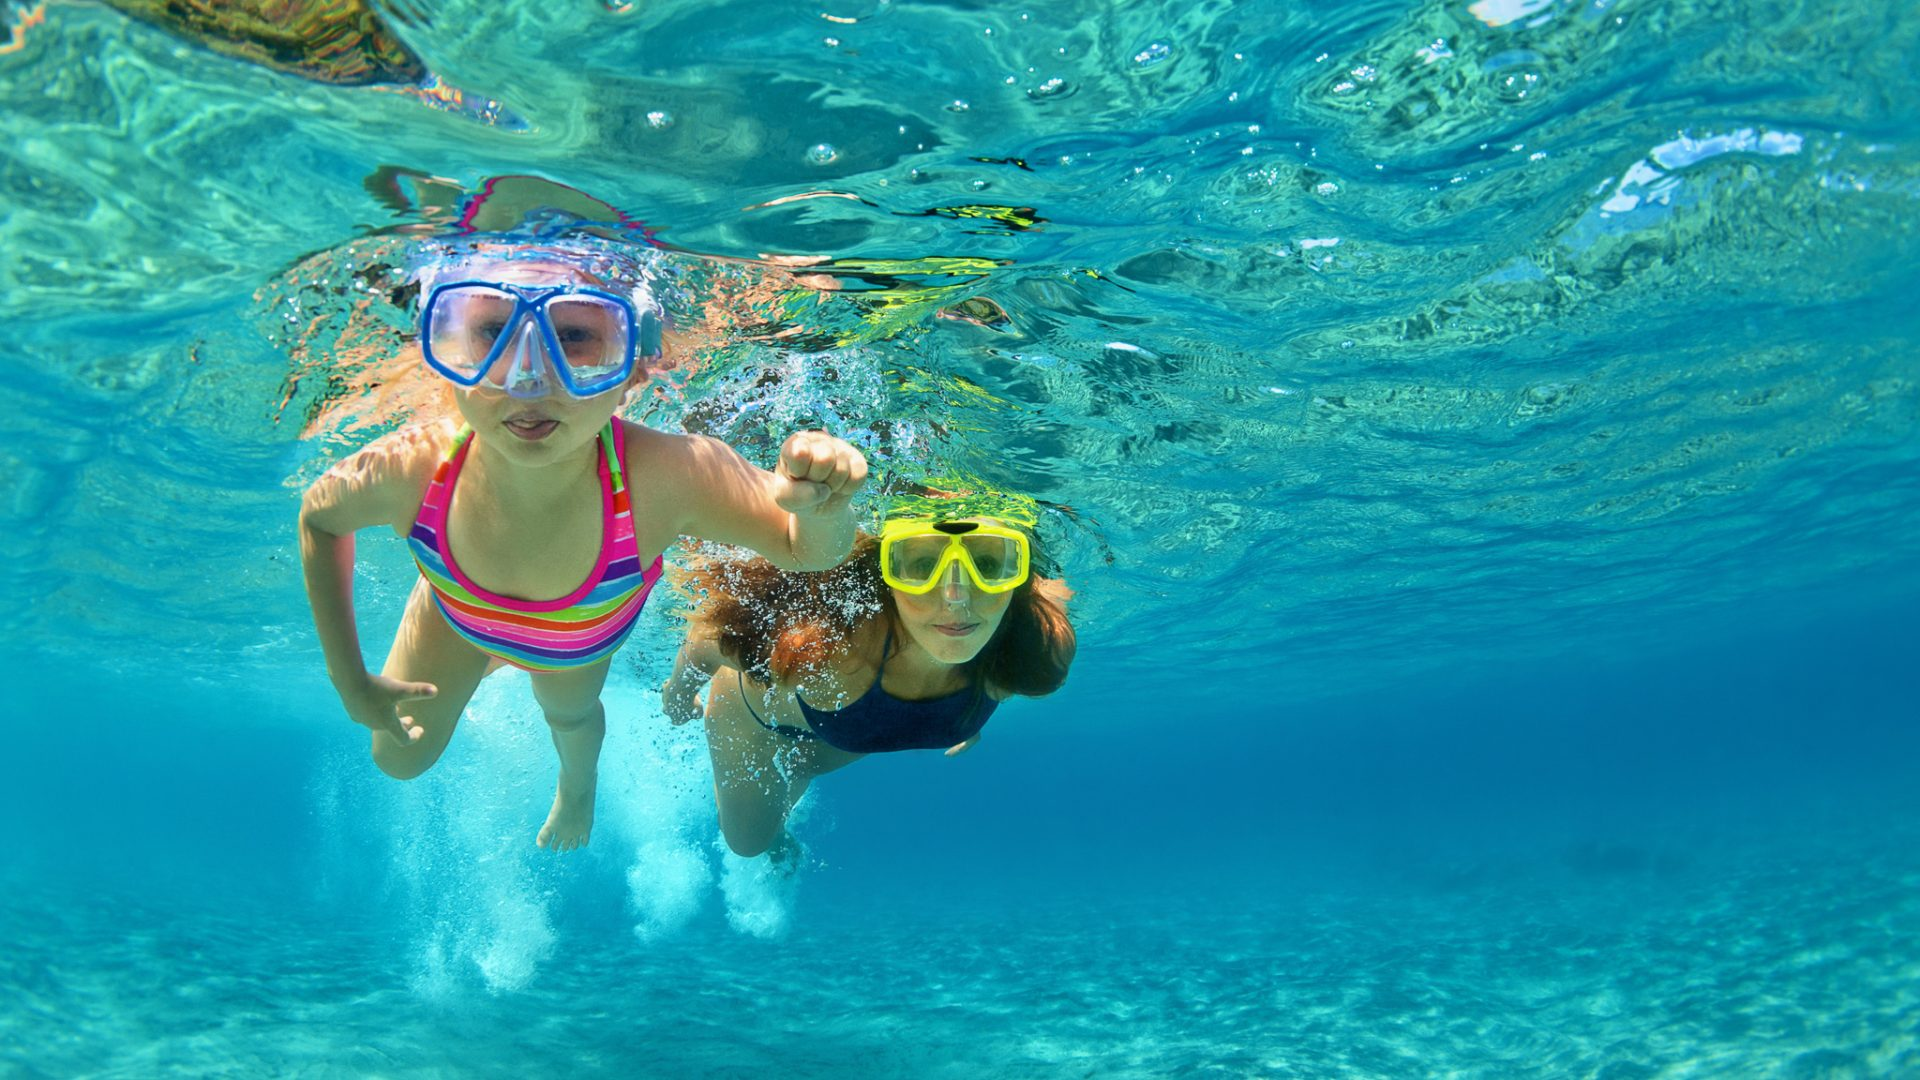 Happy family - mother with baby girl dive underwater with fun in sea pool. Healthy lifestyle, active parent, people water sport outdoor adventure, swimming lessons on beach summer holidays with child